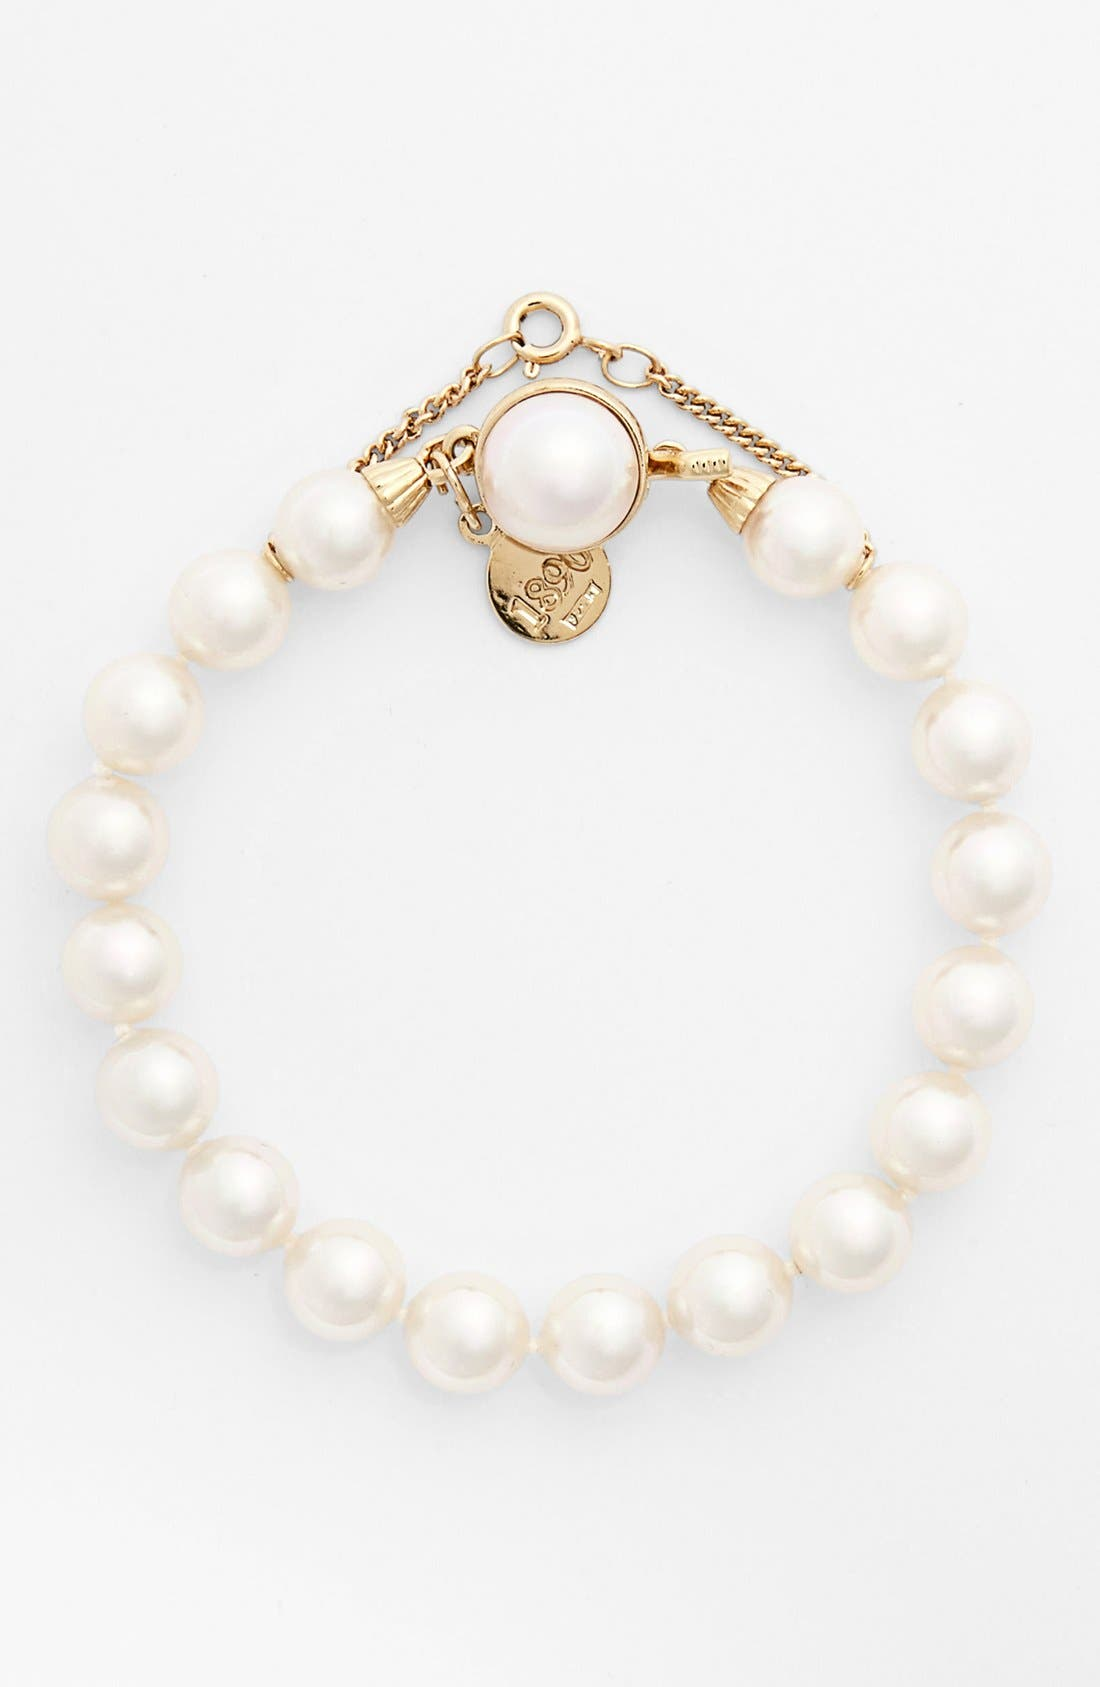 8mm Single Row Pearl Bracelet,                             Main thumbnail 1, color,                             White/ Gold